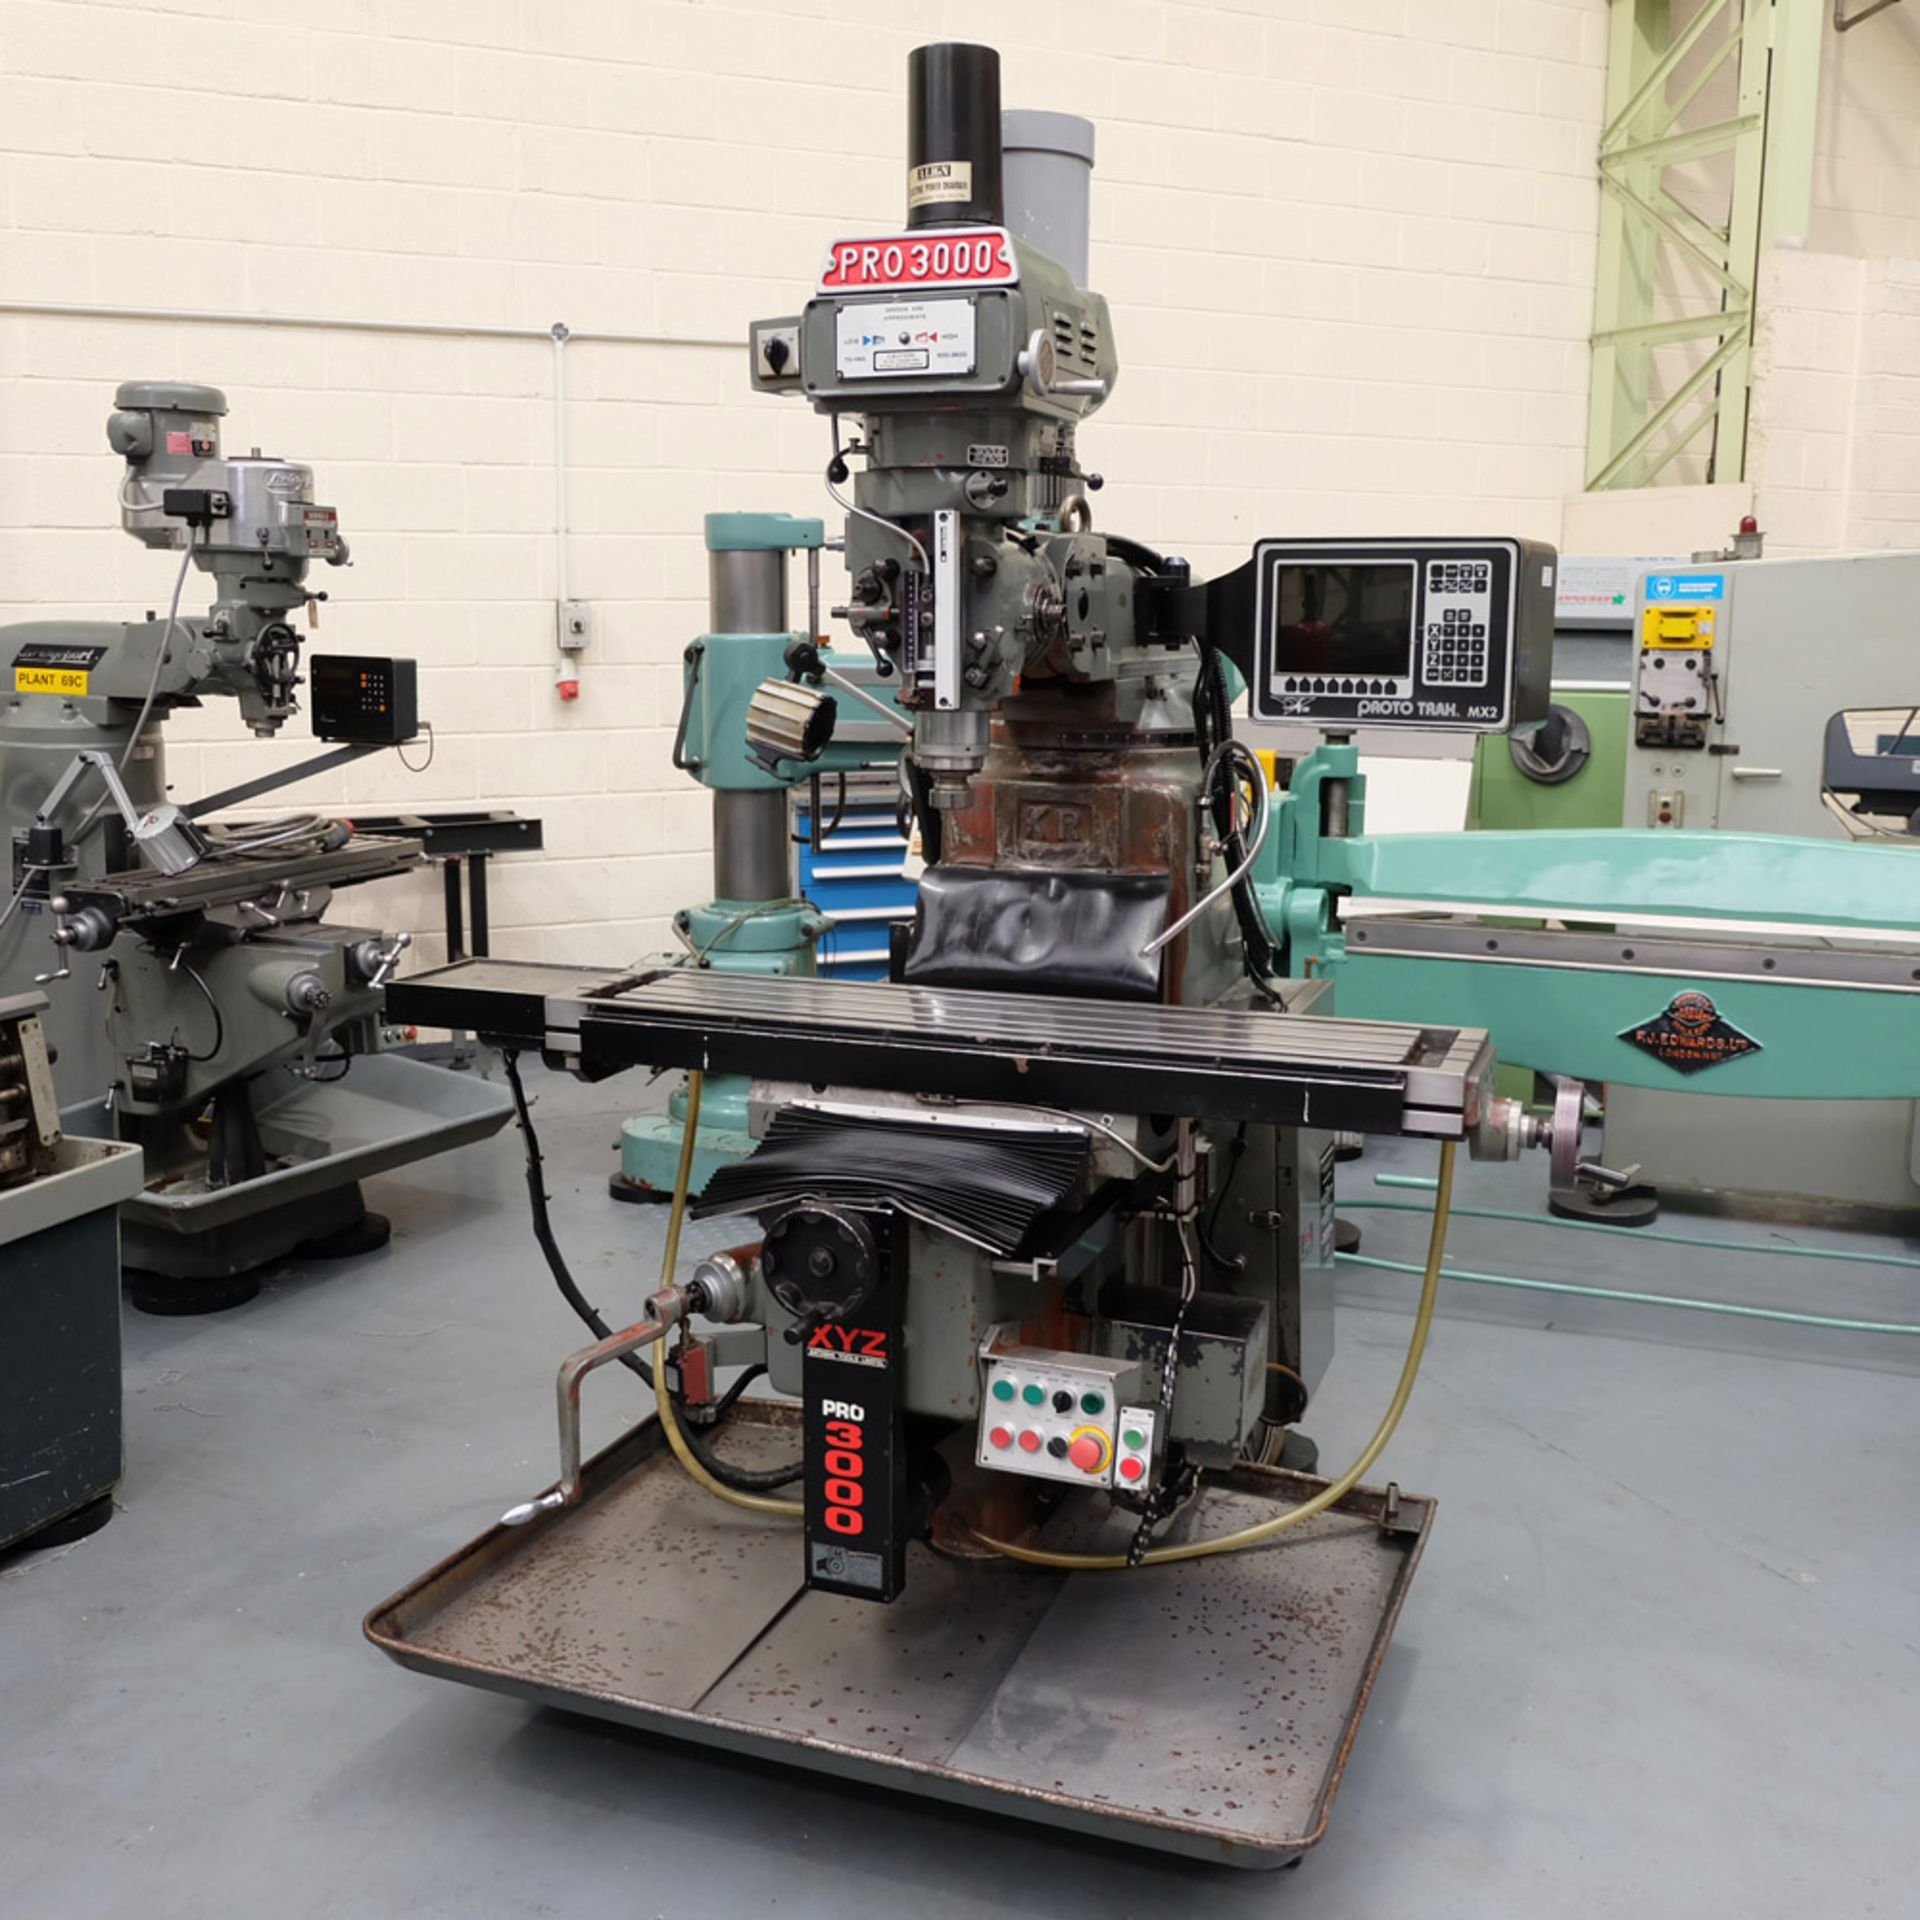 XYZ PRO 3000 Two Axis CNC Milling Machine.ProtoTrak MX2 Two Axis Programmable Control.